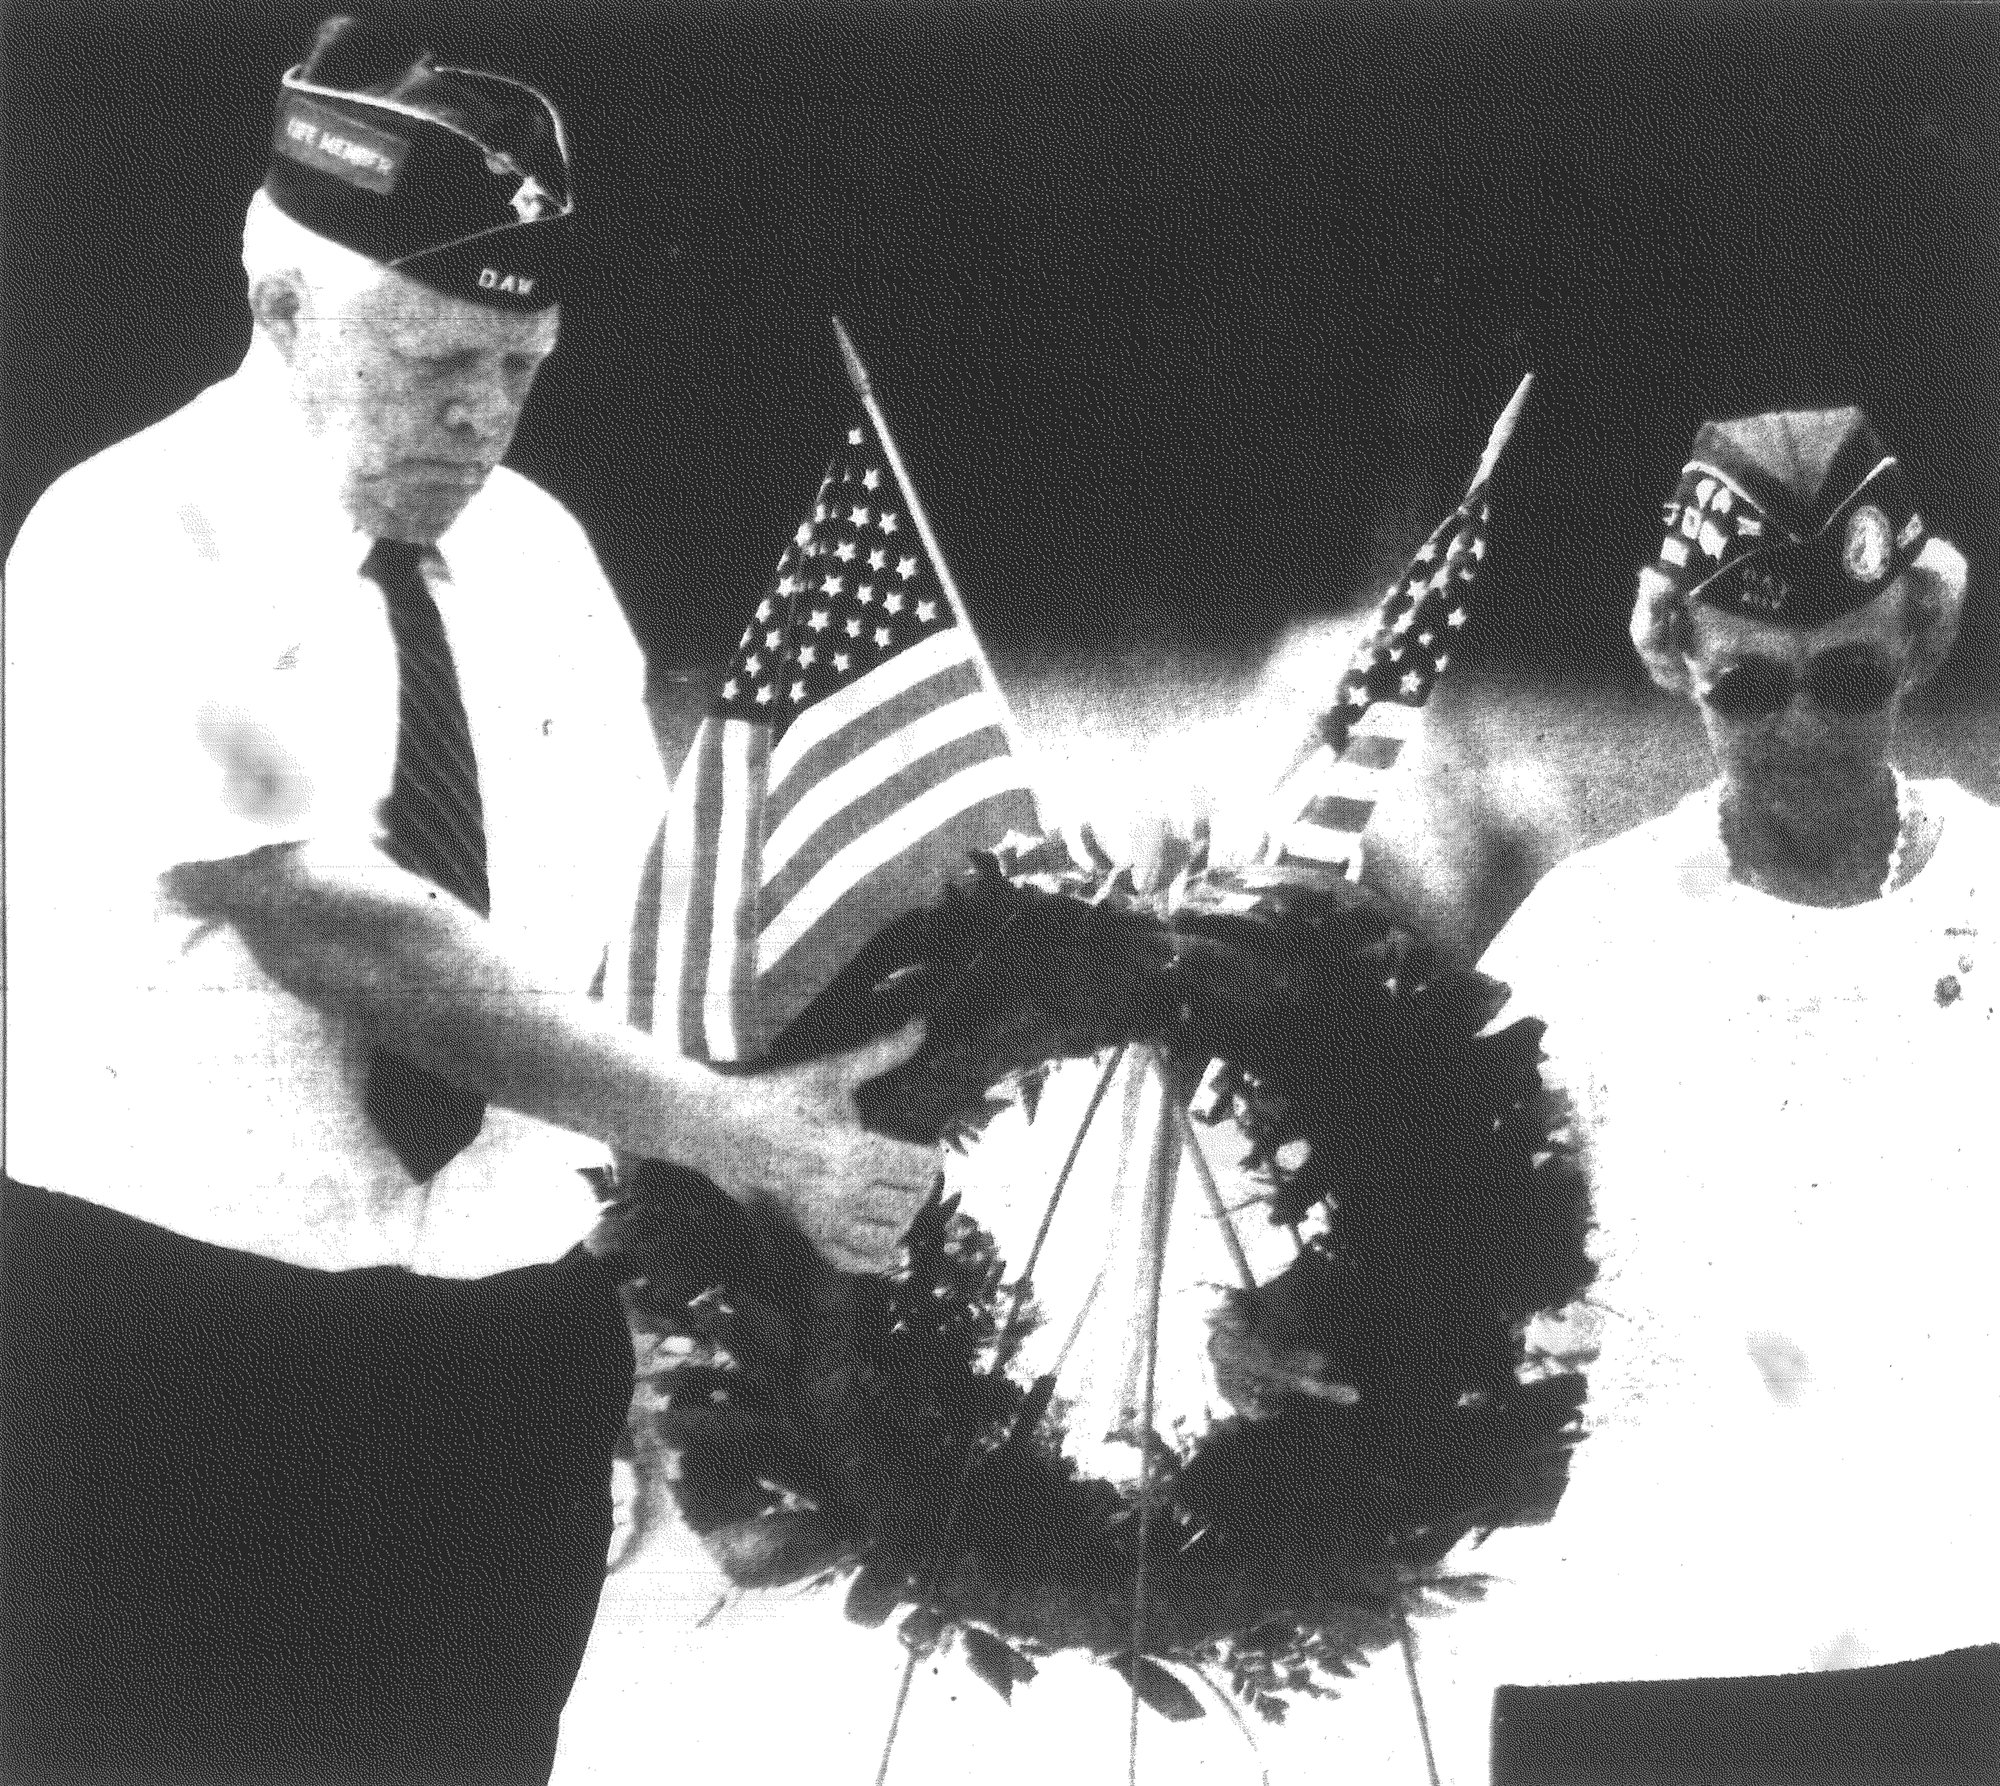 Disabled American Veterans Commander Joseph E. Barwick and Gisele Forest, a DAV auxiliary member, place a wreath at Evergreen Cemetery during a Memorial Day ceremony in 1991 in honor of those from Sumter County who gave their lives.